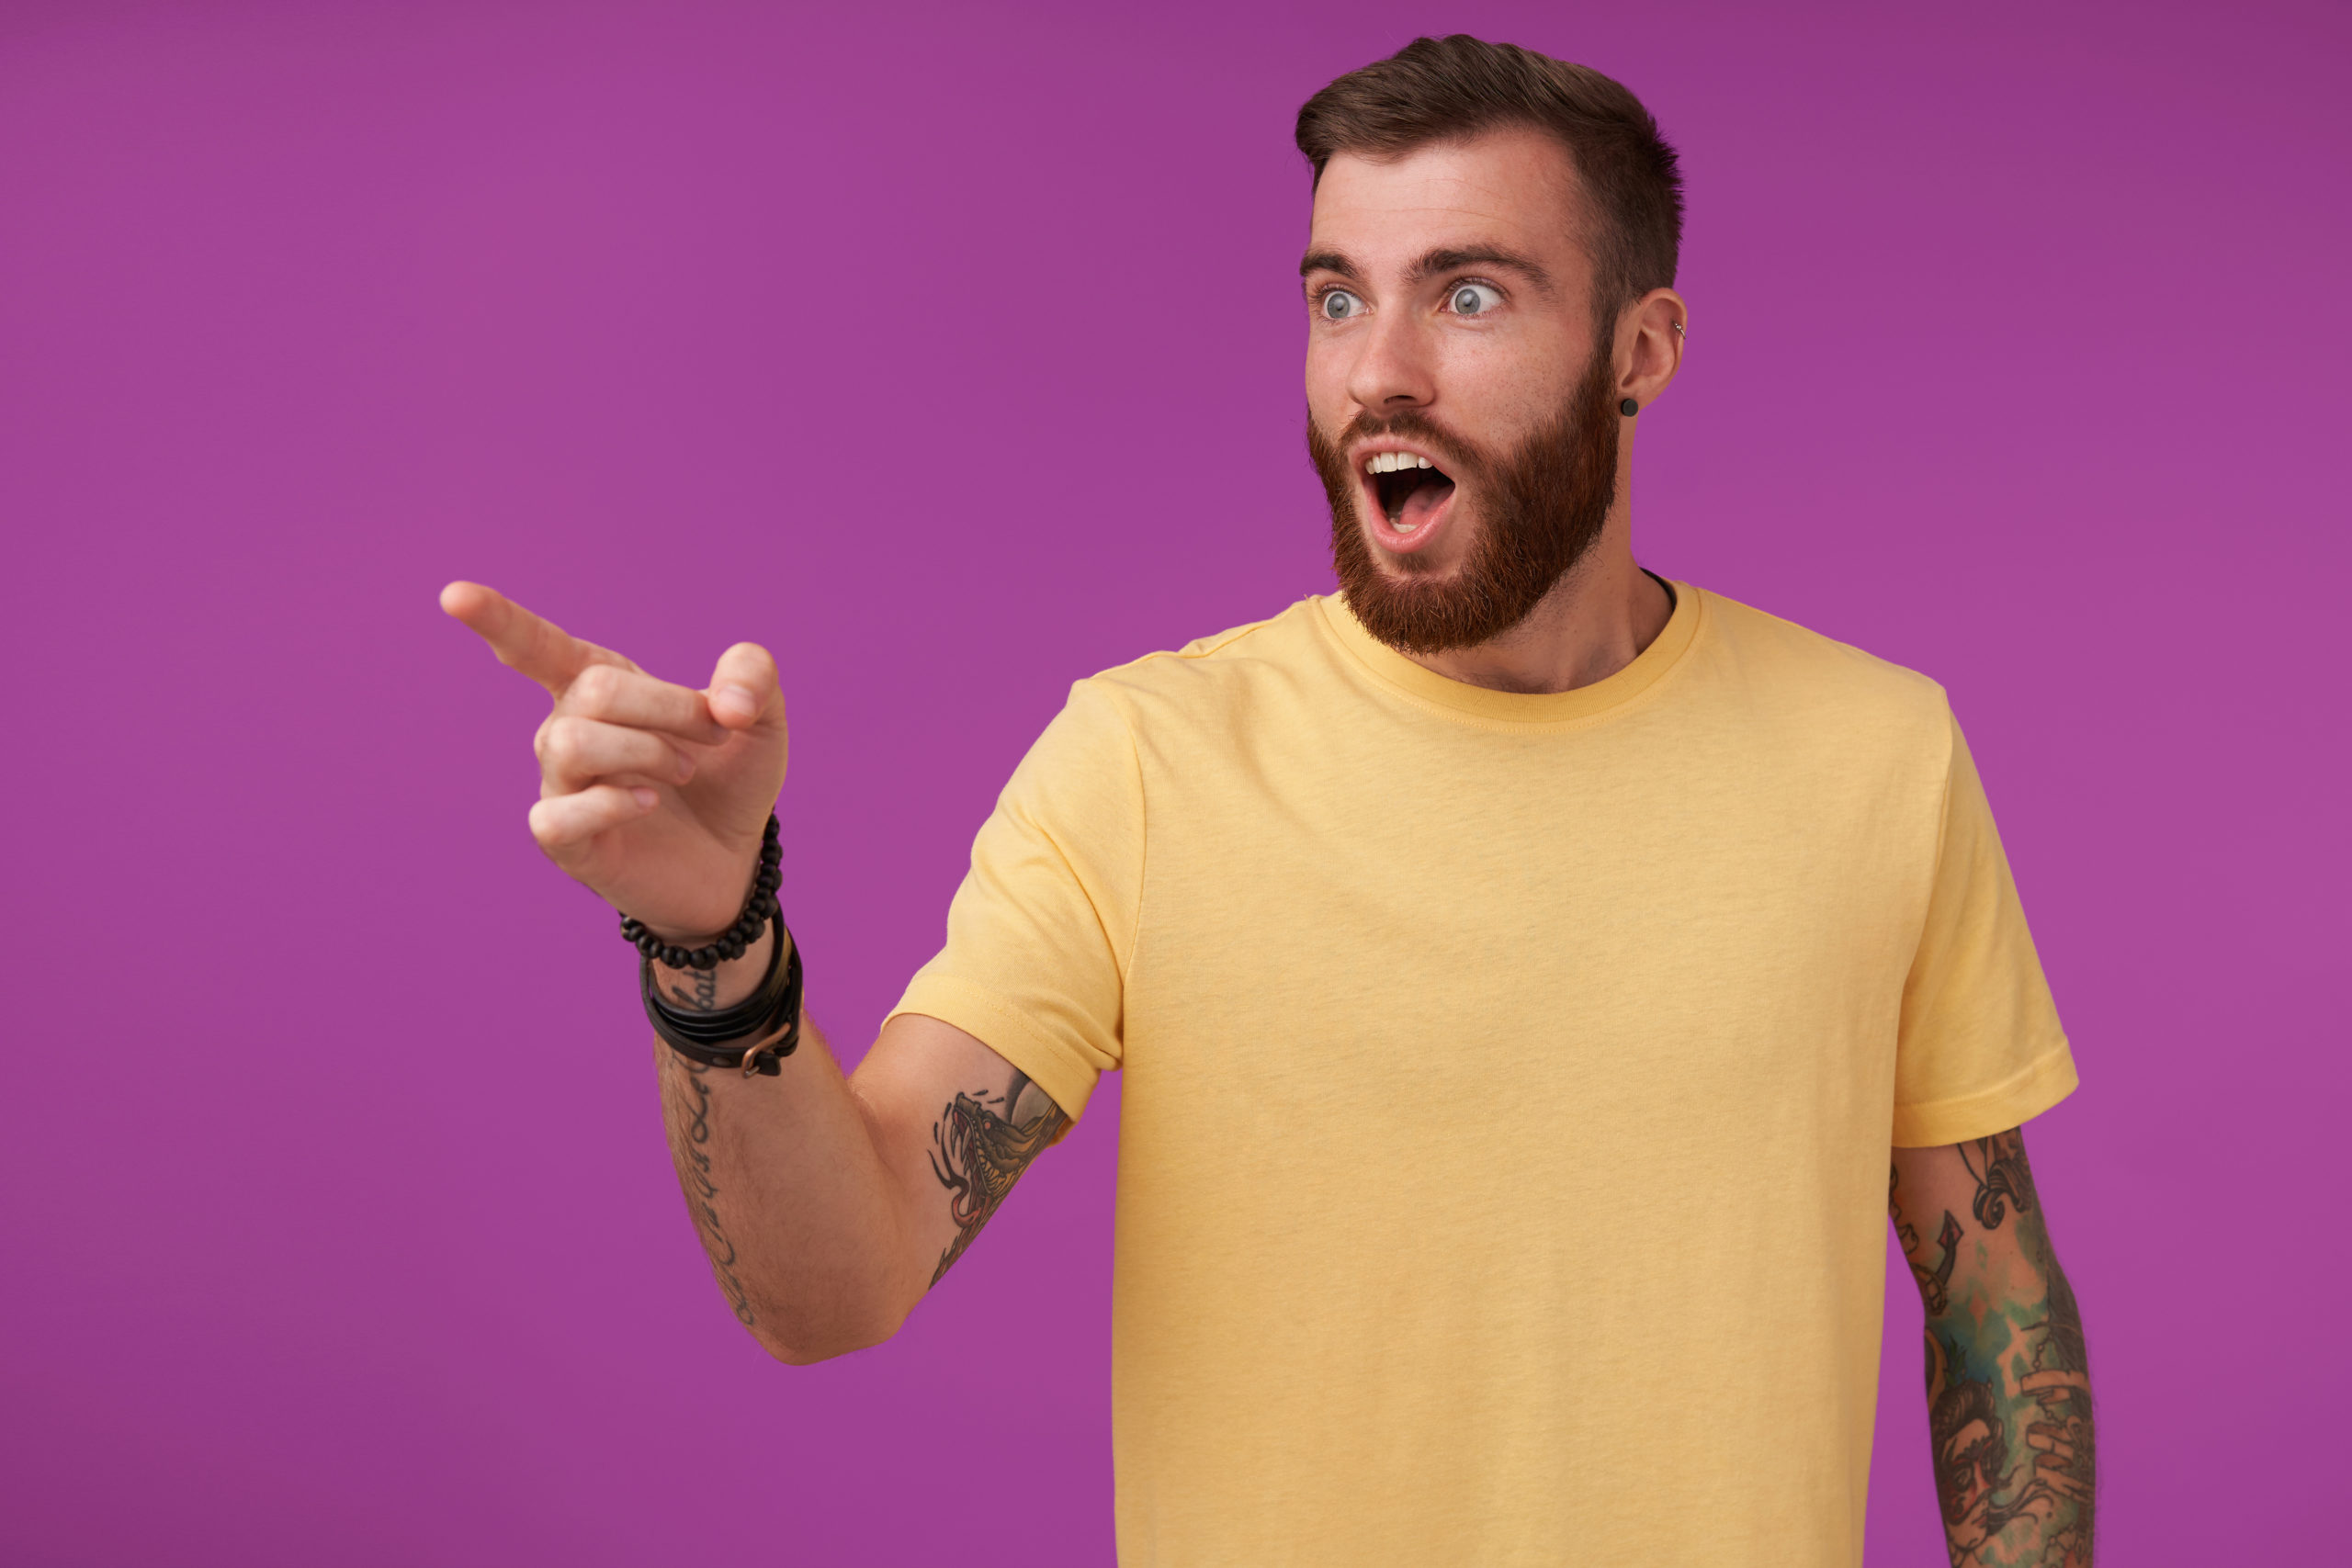 Shocked handsome brunette bearded guy with tattooes wearing yellow t-shirt and fitness watch noticing something and showing on it with forefinger, isolated over purple background